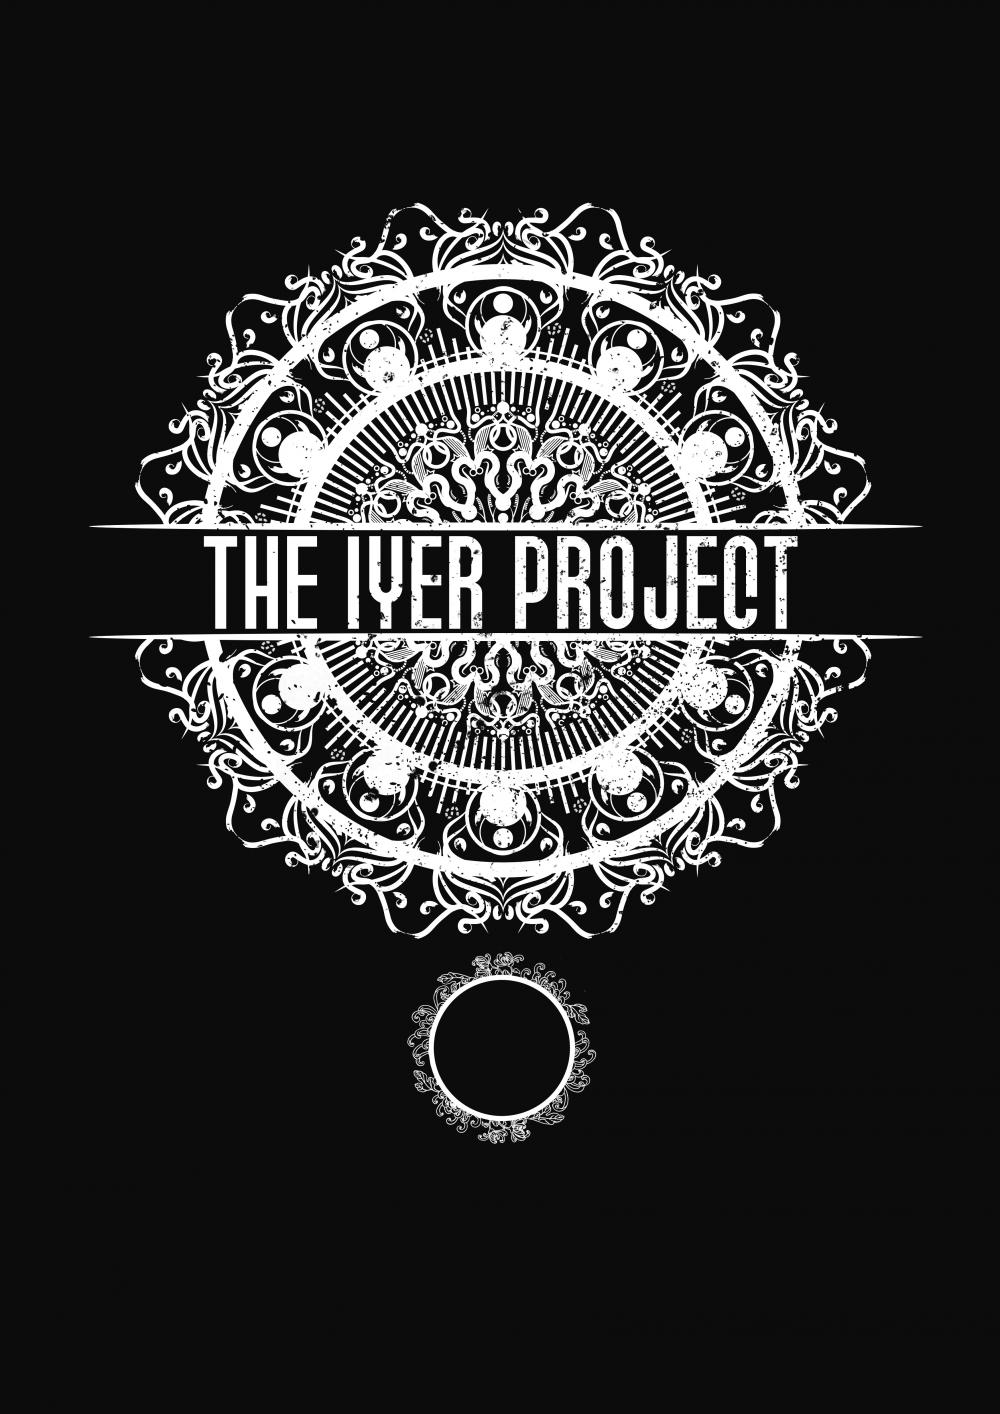 The Iyer Project , Band Logo